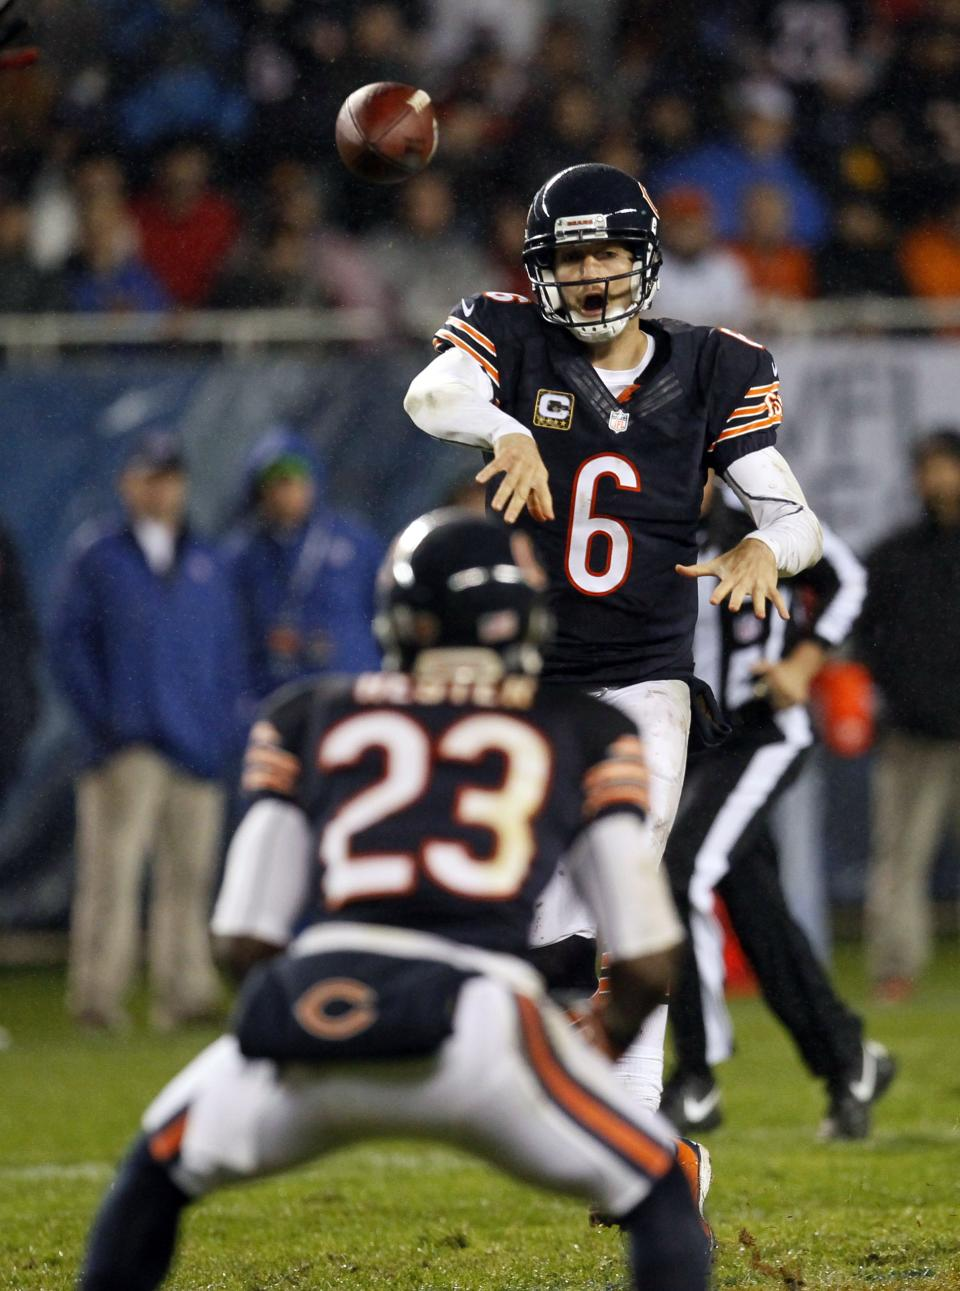 Chicago Bears quarterback Jay Cutler (6) throws an illegal forward pass to wide receiver Devin Hester (23) in the first half an NFL football game in Chicago, Sunday, Nov. 11, 2012.  The Texans won 13-6. (AP Photo/Charles Rex Arbogast)